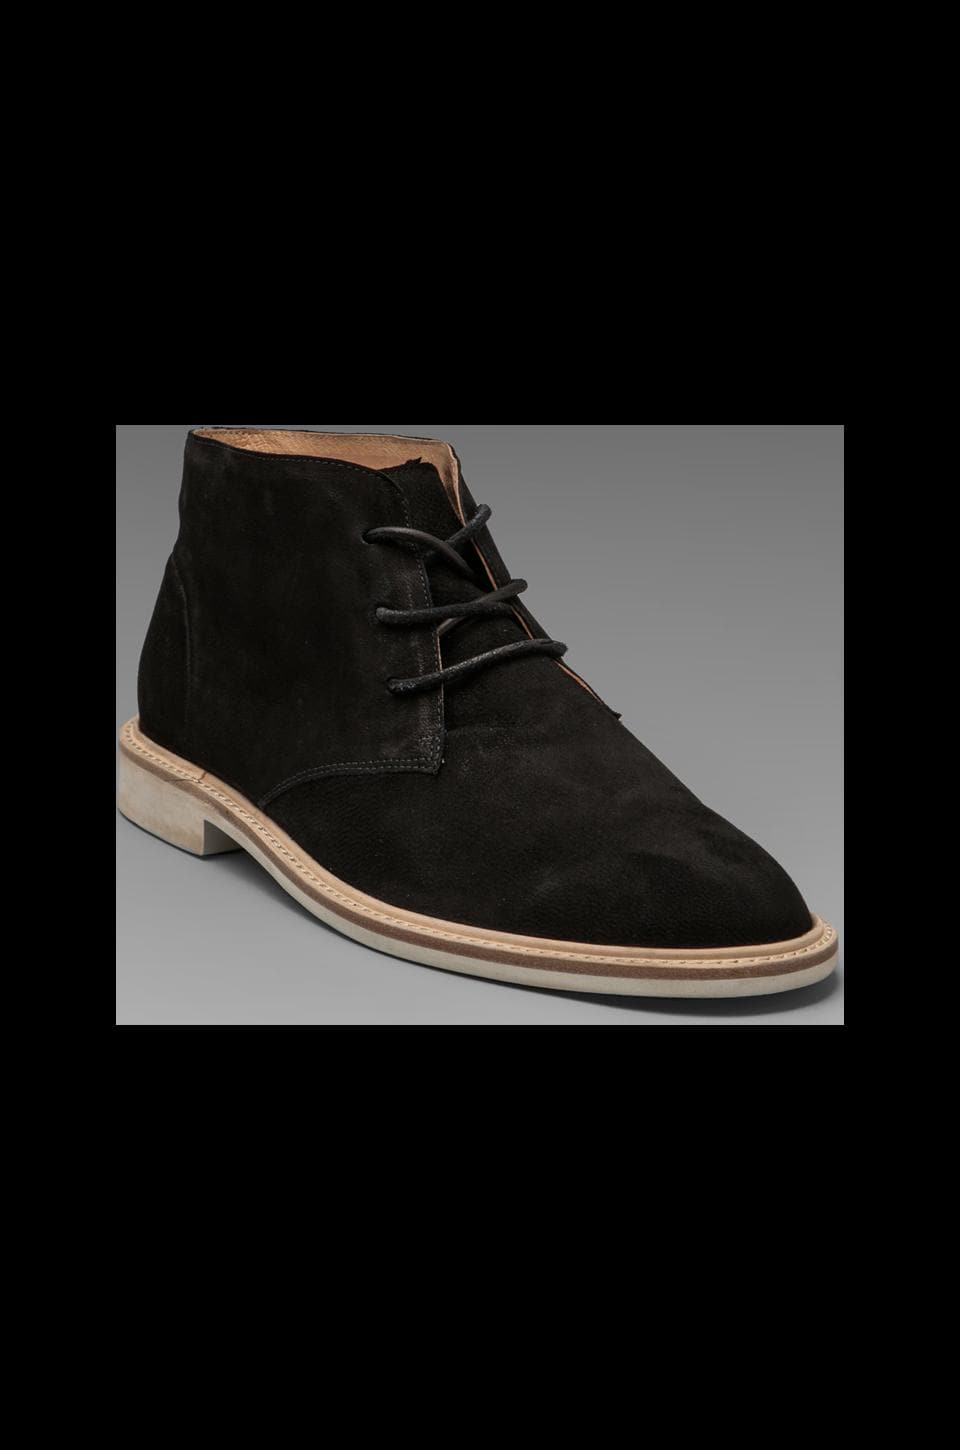 Vanishing Elephant Lawson Desert Boot in Black